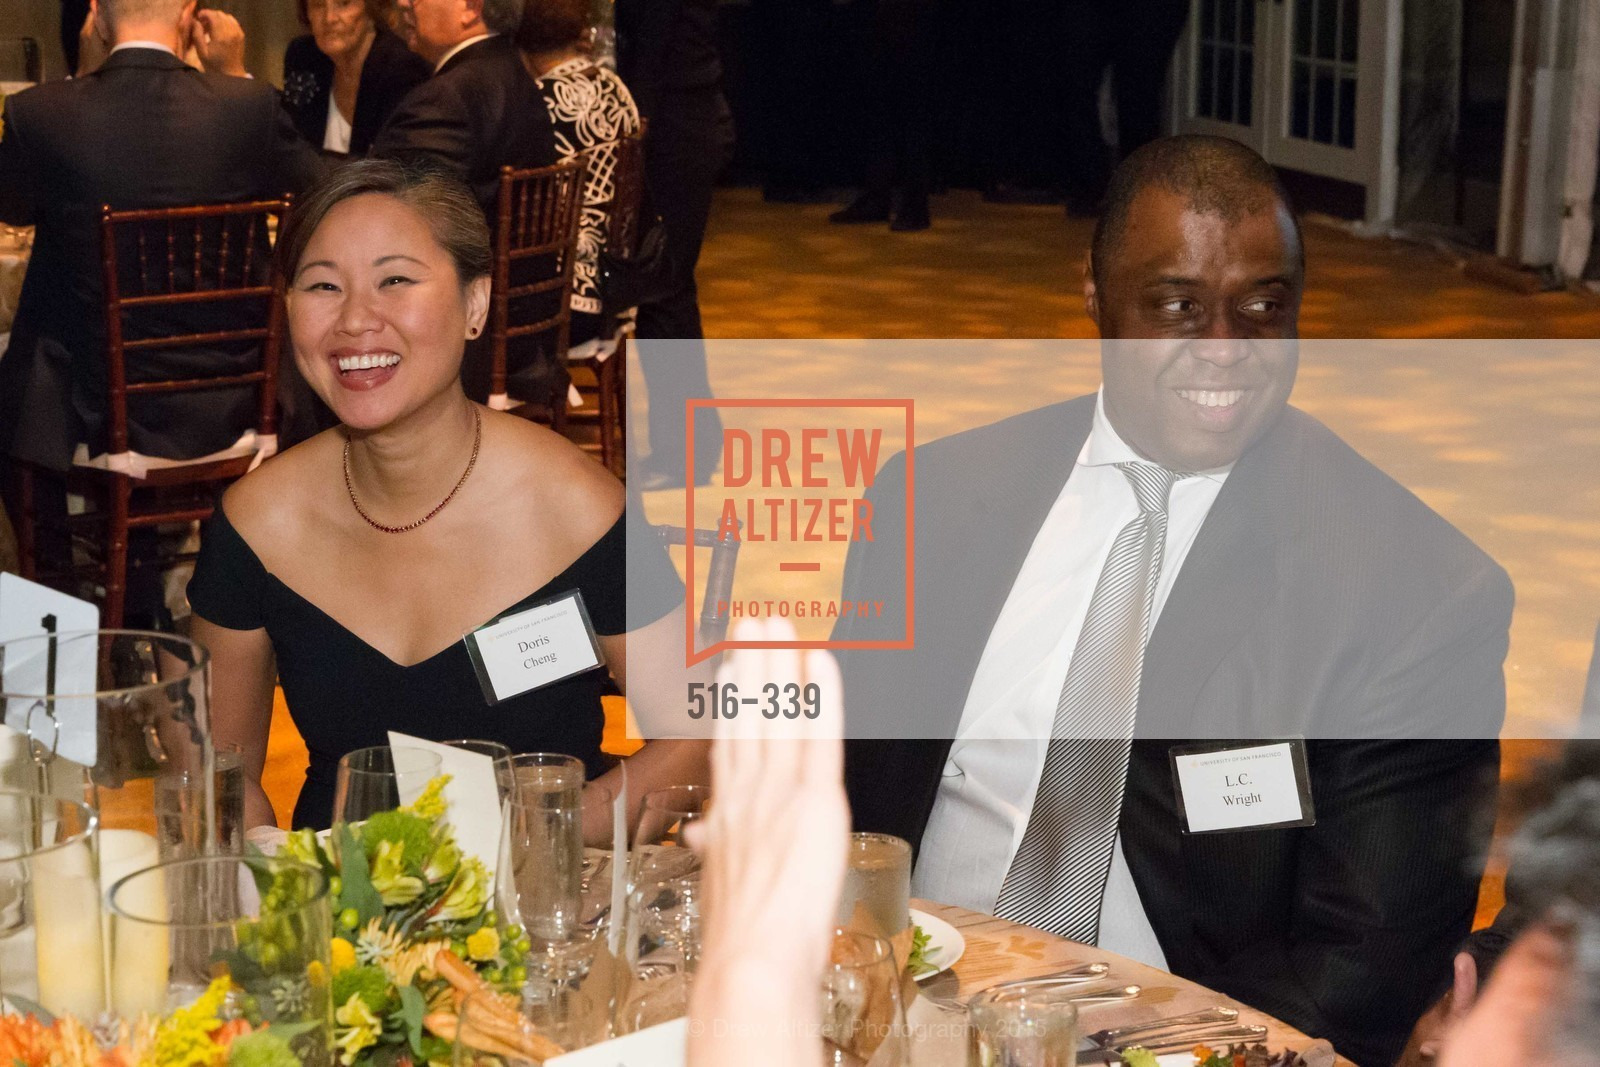 Doris Cheng, LC Wright, University of San Francisco Alumni Awards Gala 2015, University of San Francisco, October 2nd, 2015,Drew Altizer, Drew Altizer Photography, full-service agency, private events, San Francisco photographer, photographer california